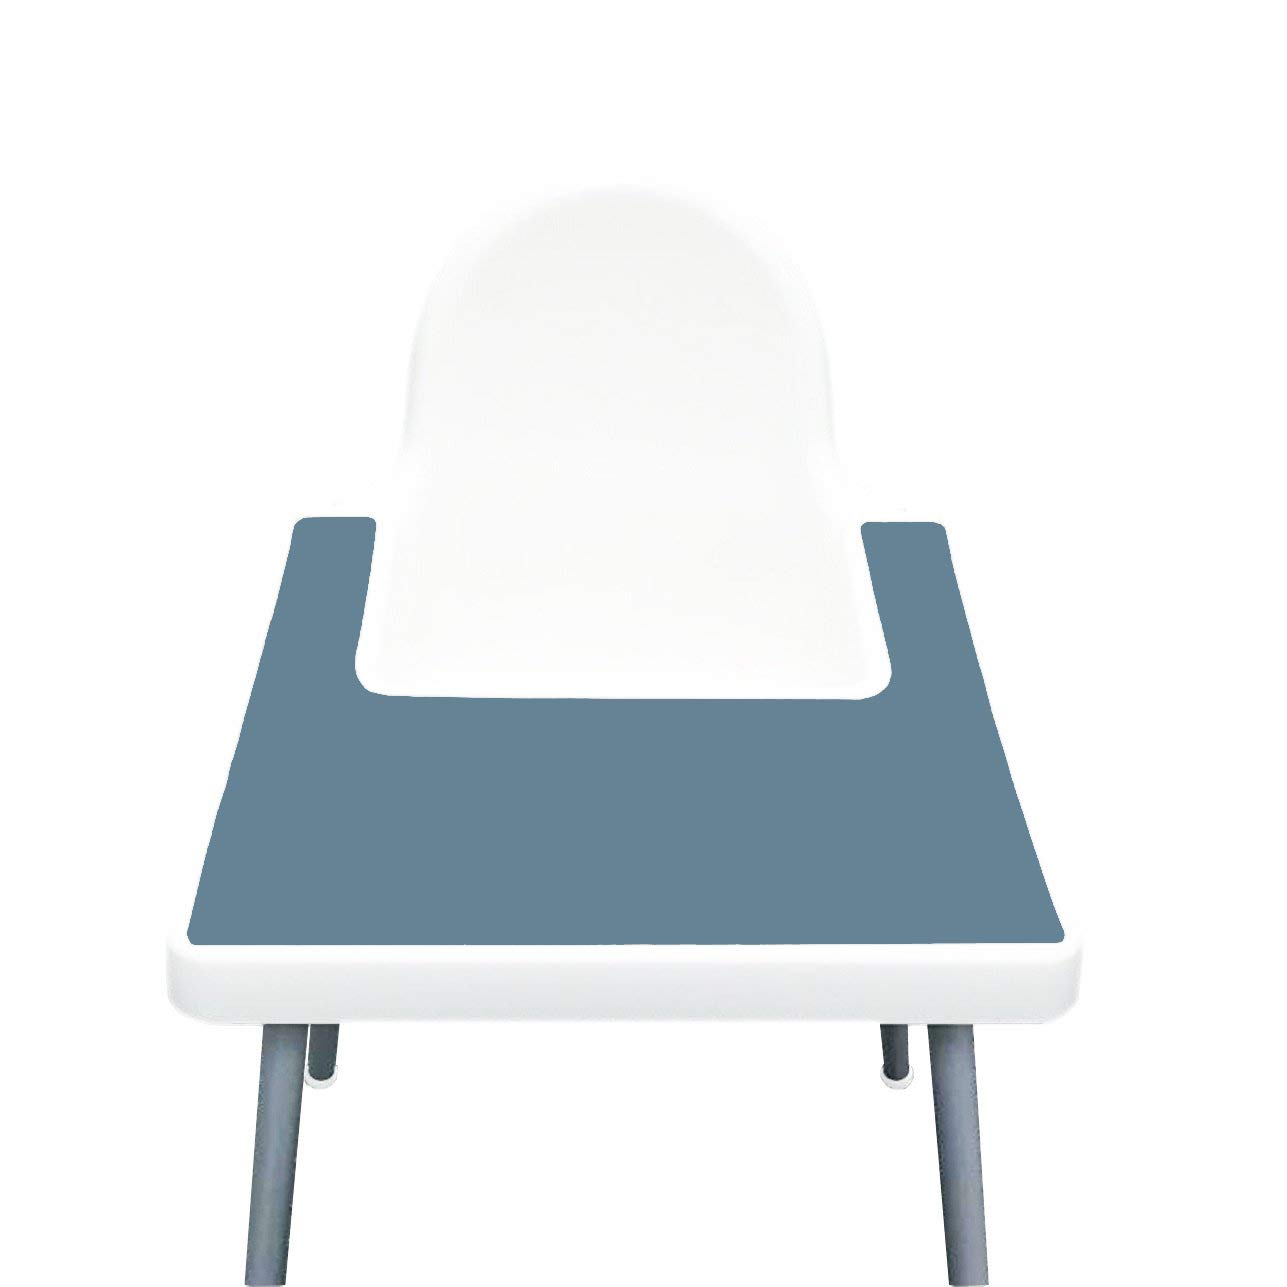 IKEA High Chair Placemat for Antilop Baby High Chair – Silicone Placemats for Baby and Toddler Finger Food Dropping – BPA Free, Dishwasher Safe – Non Slip Food Mat + More Colors (Ether Blue)